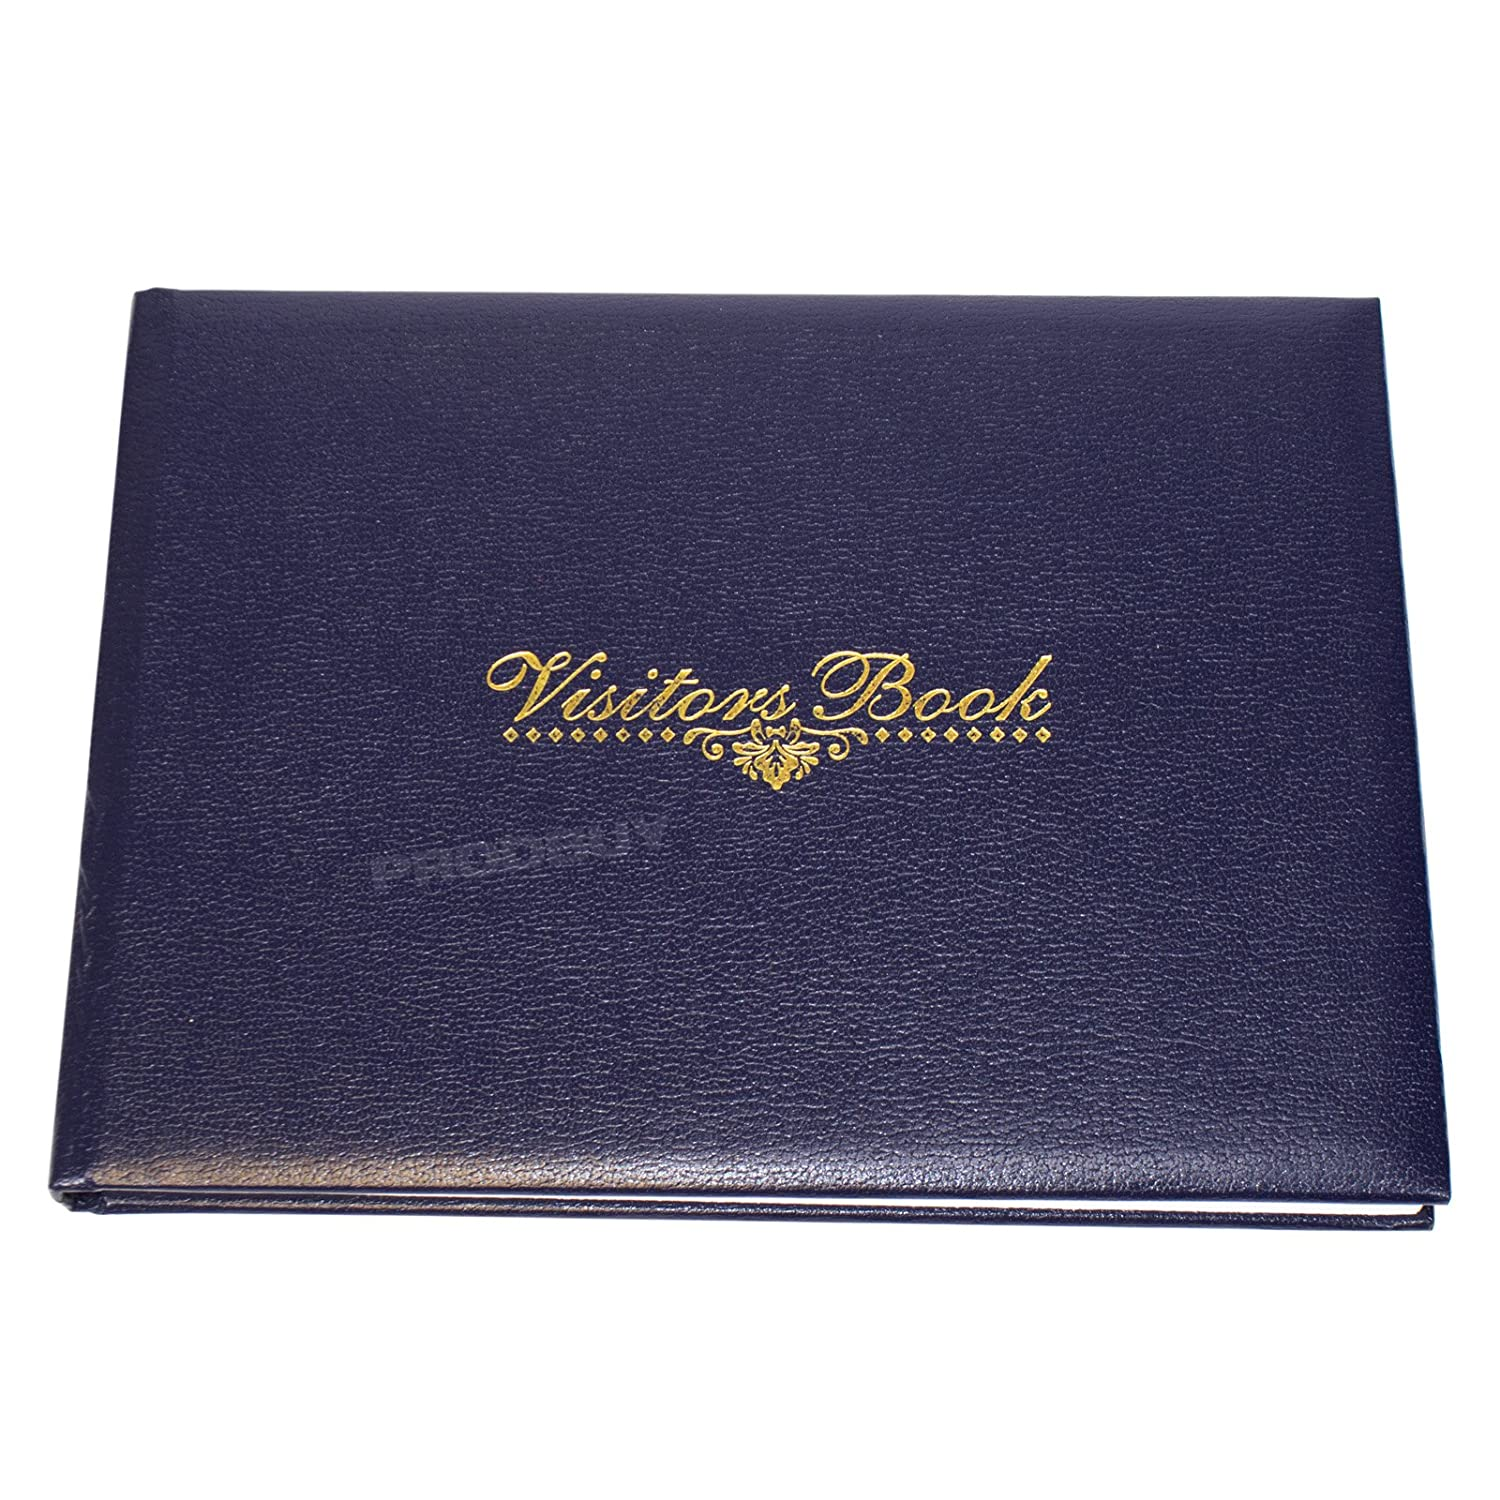 Navy Blue Faux Leather Visitors Book 128 Page Hotel Guest House Reception Record Log Pad